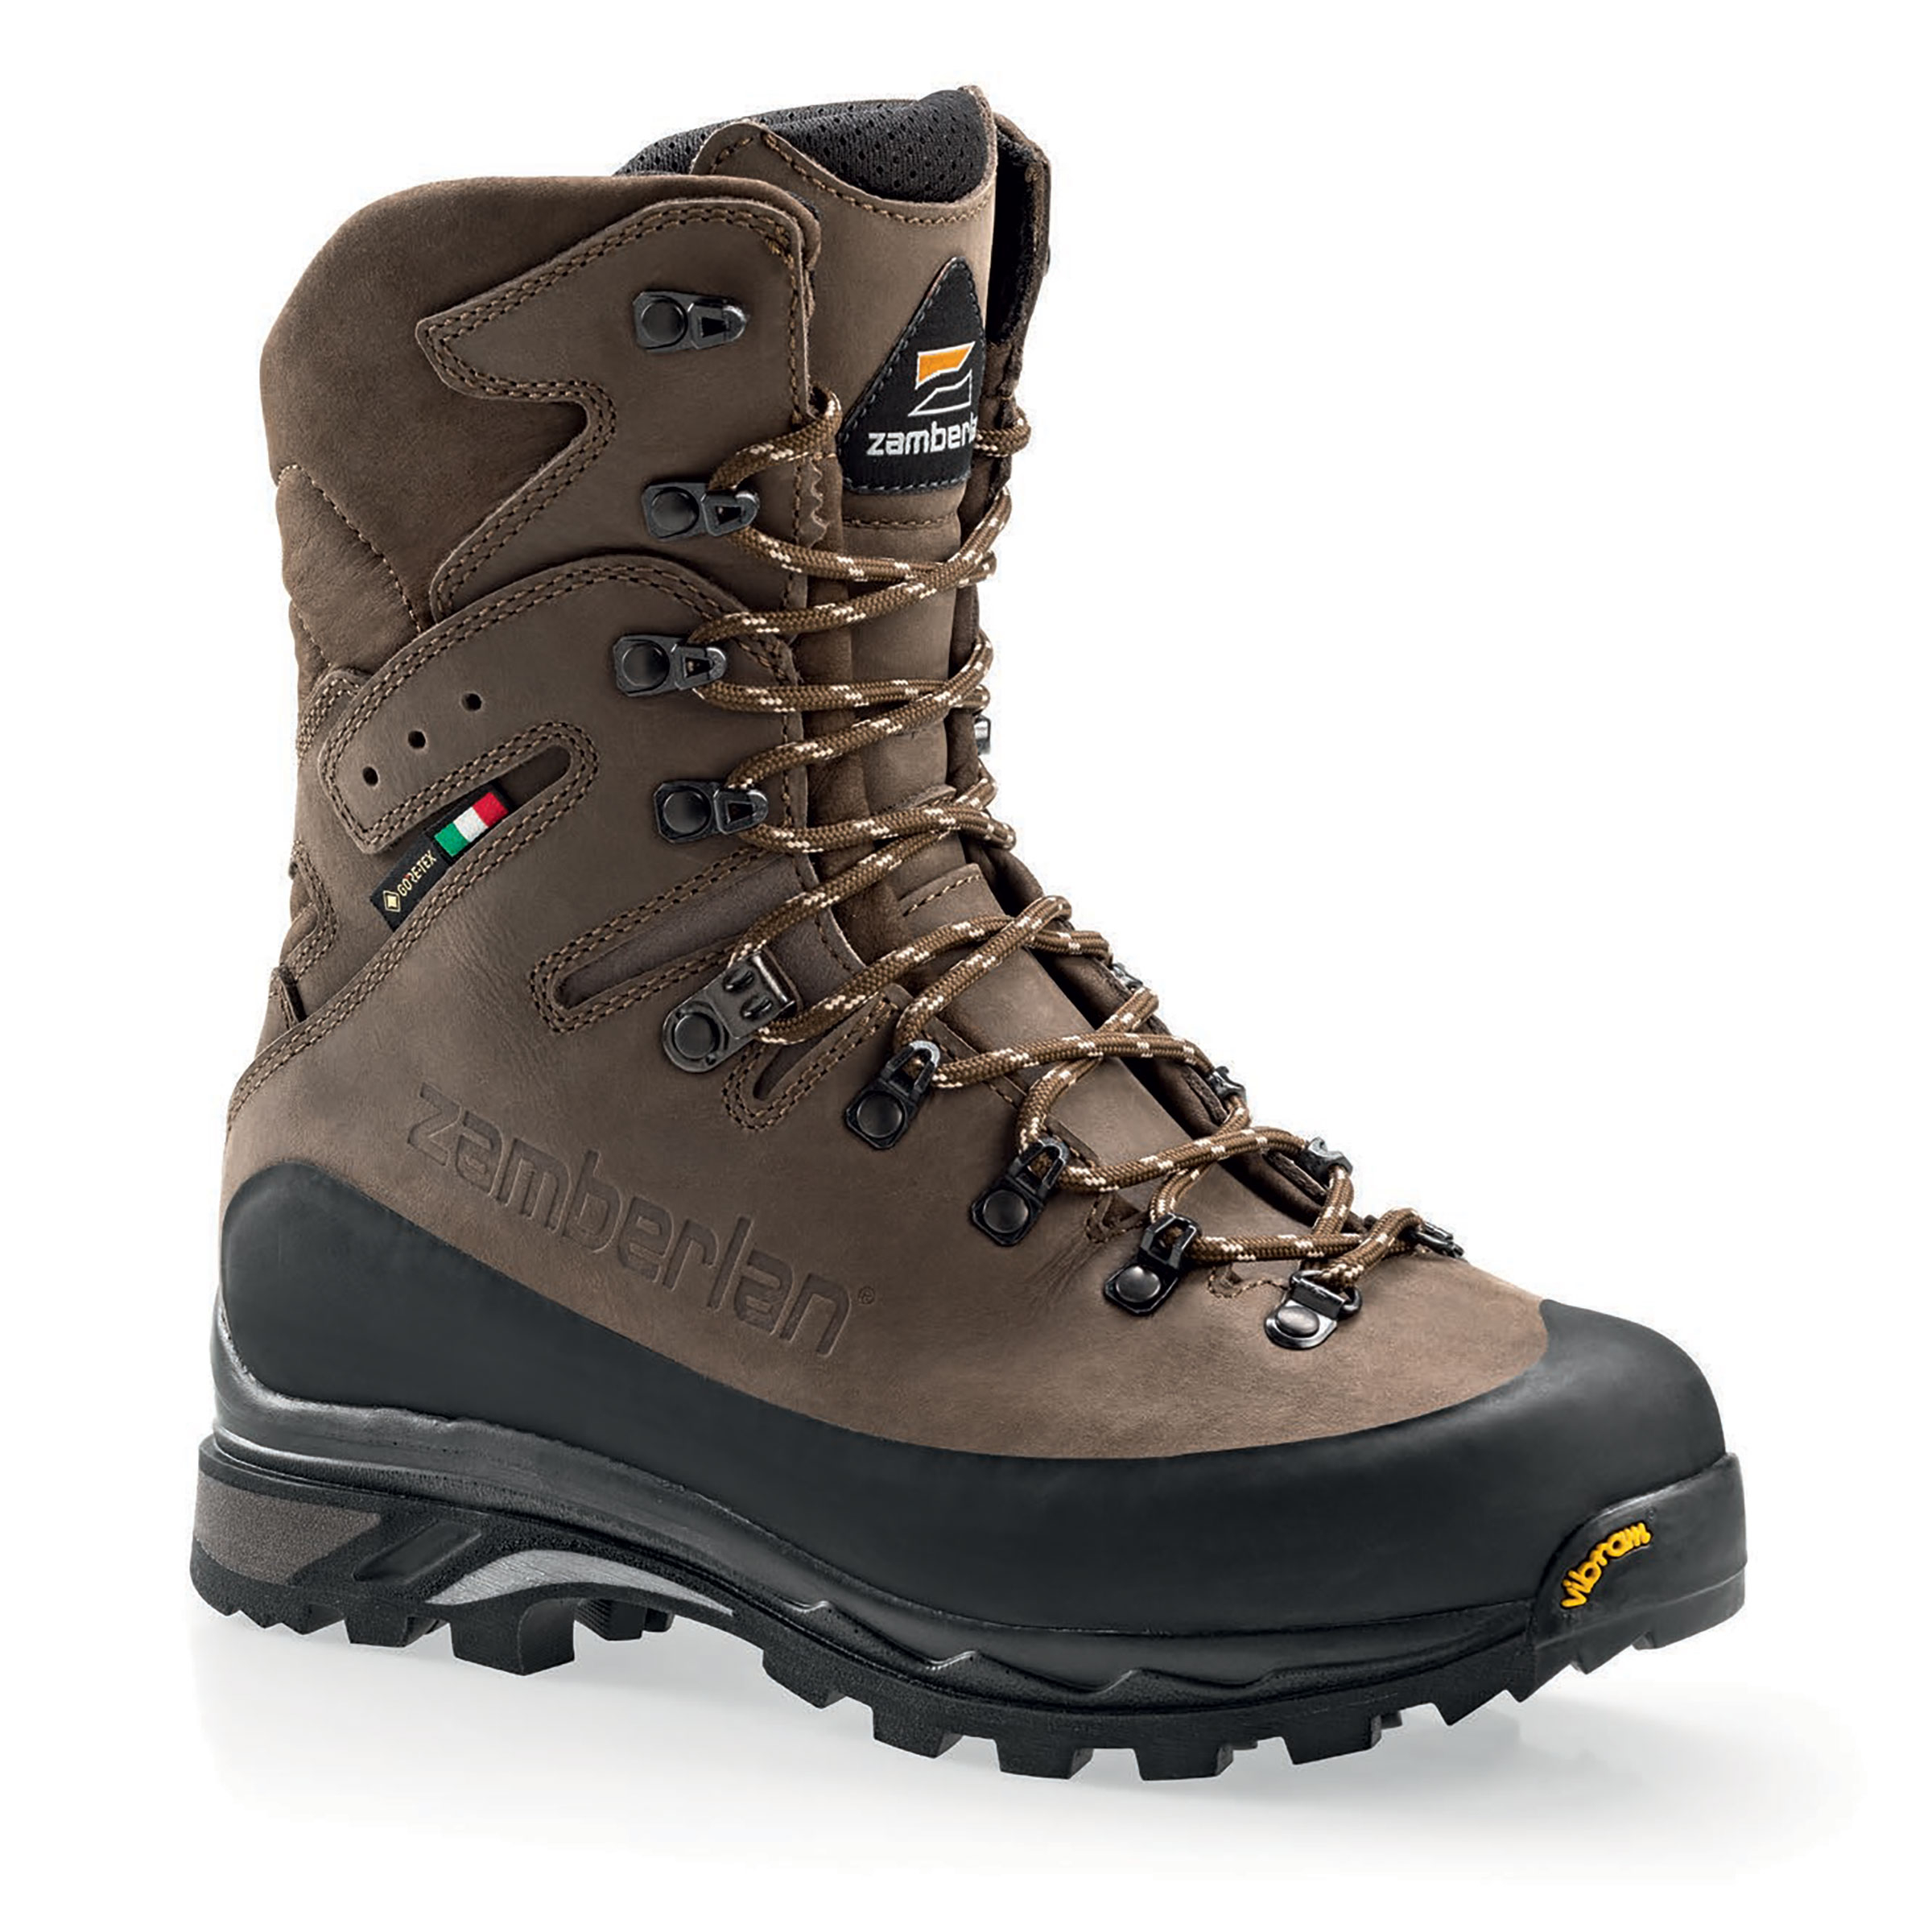 1980 OUTFITTER GTX® RR WNS   -   Women's Hunting Boots   -   Brown